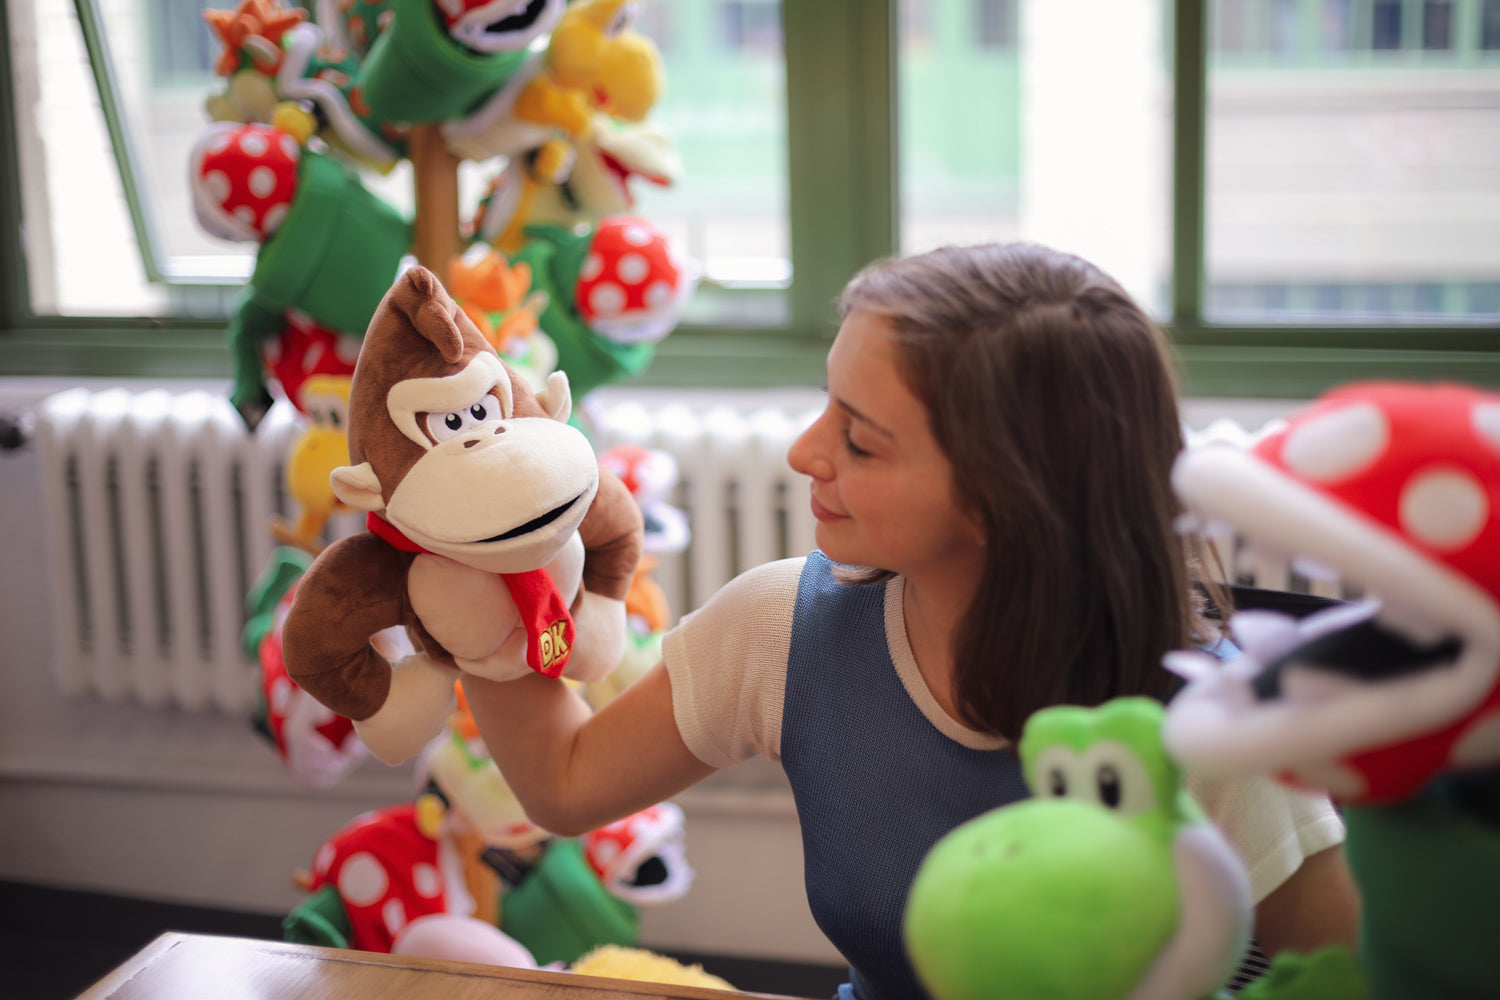 Donkey Kong puppet on model's armd